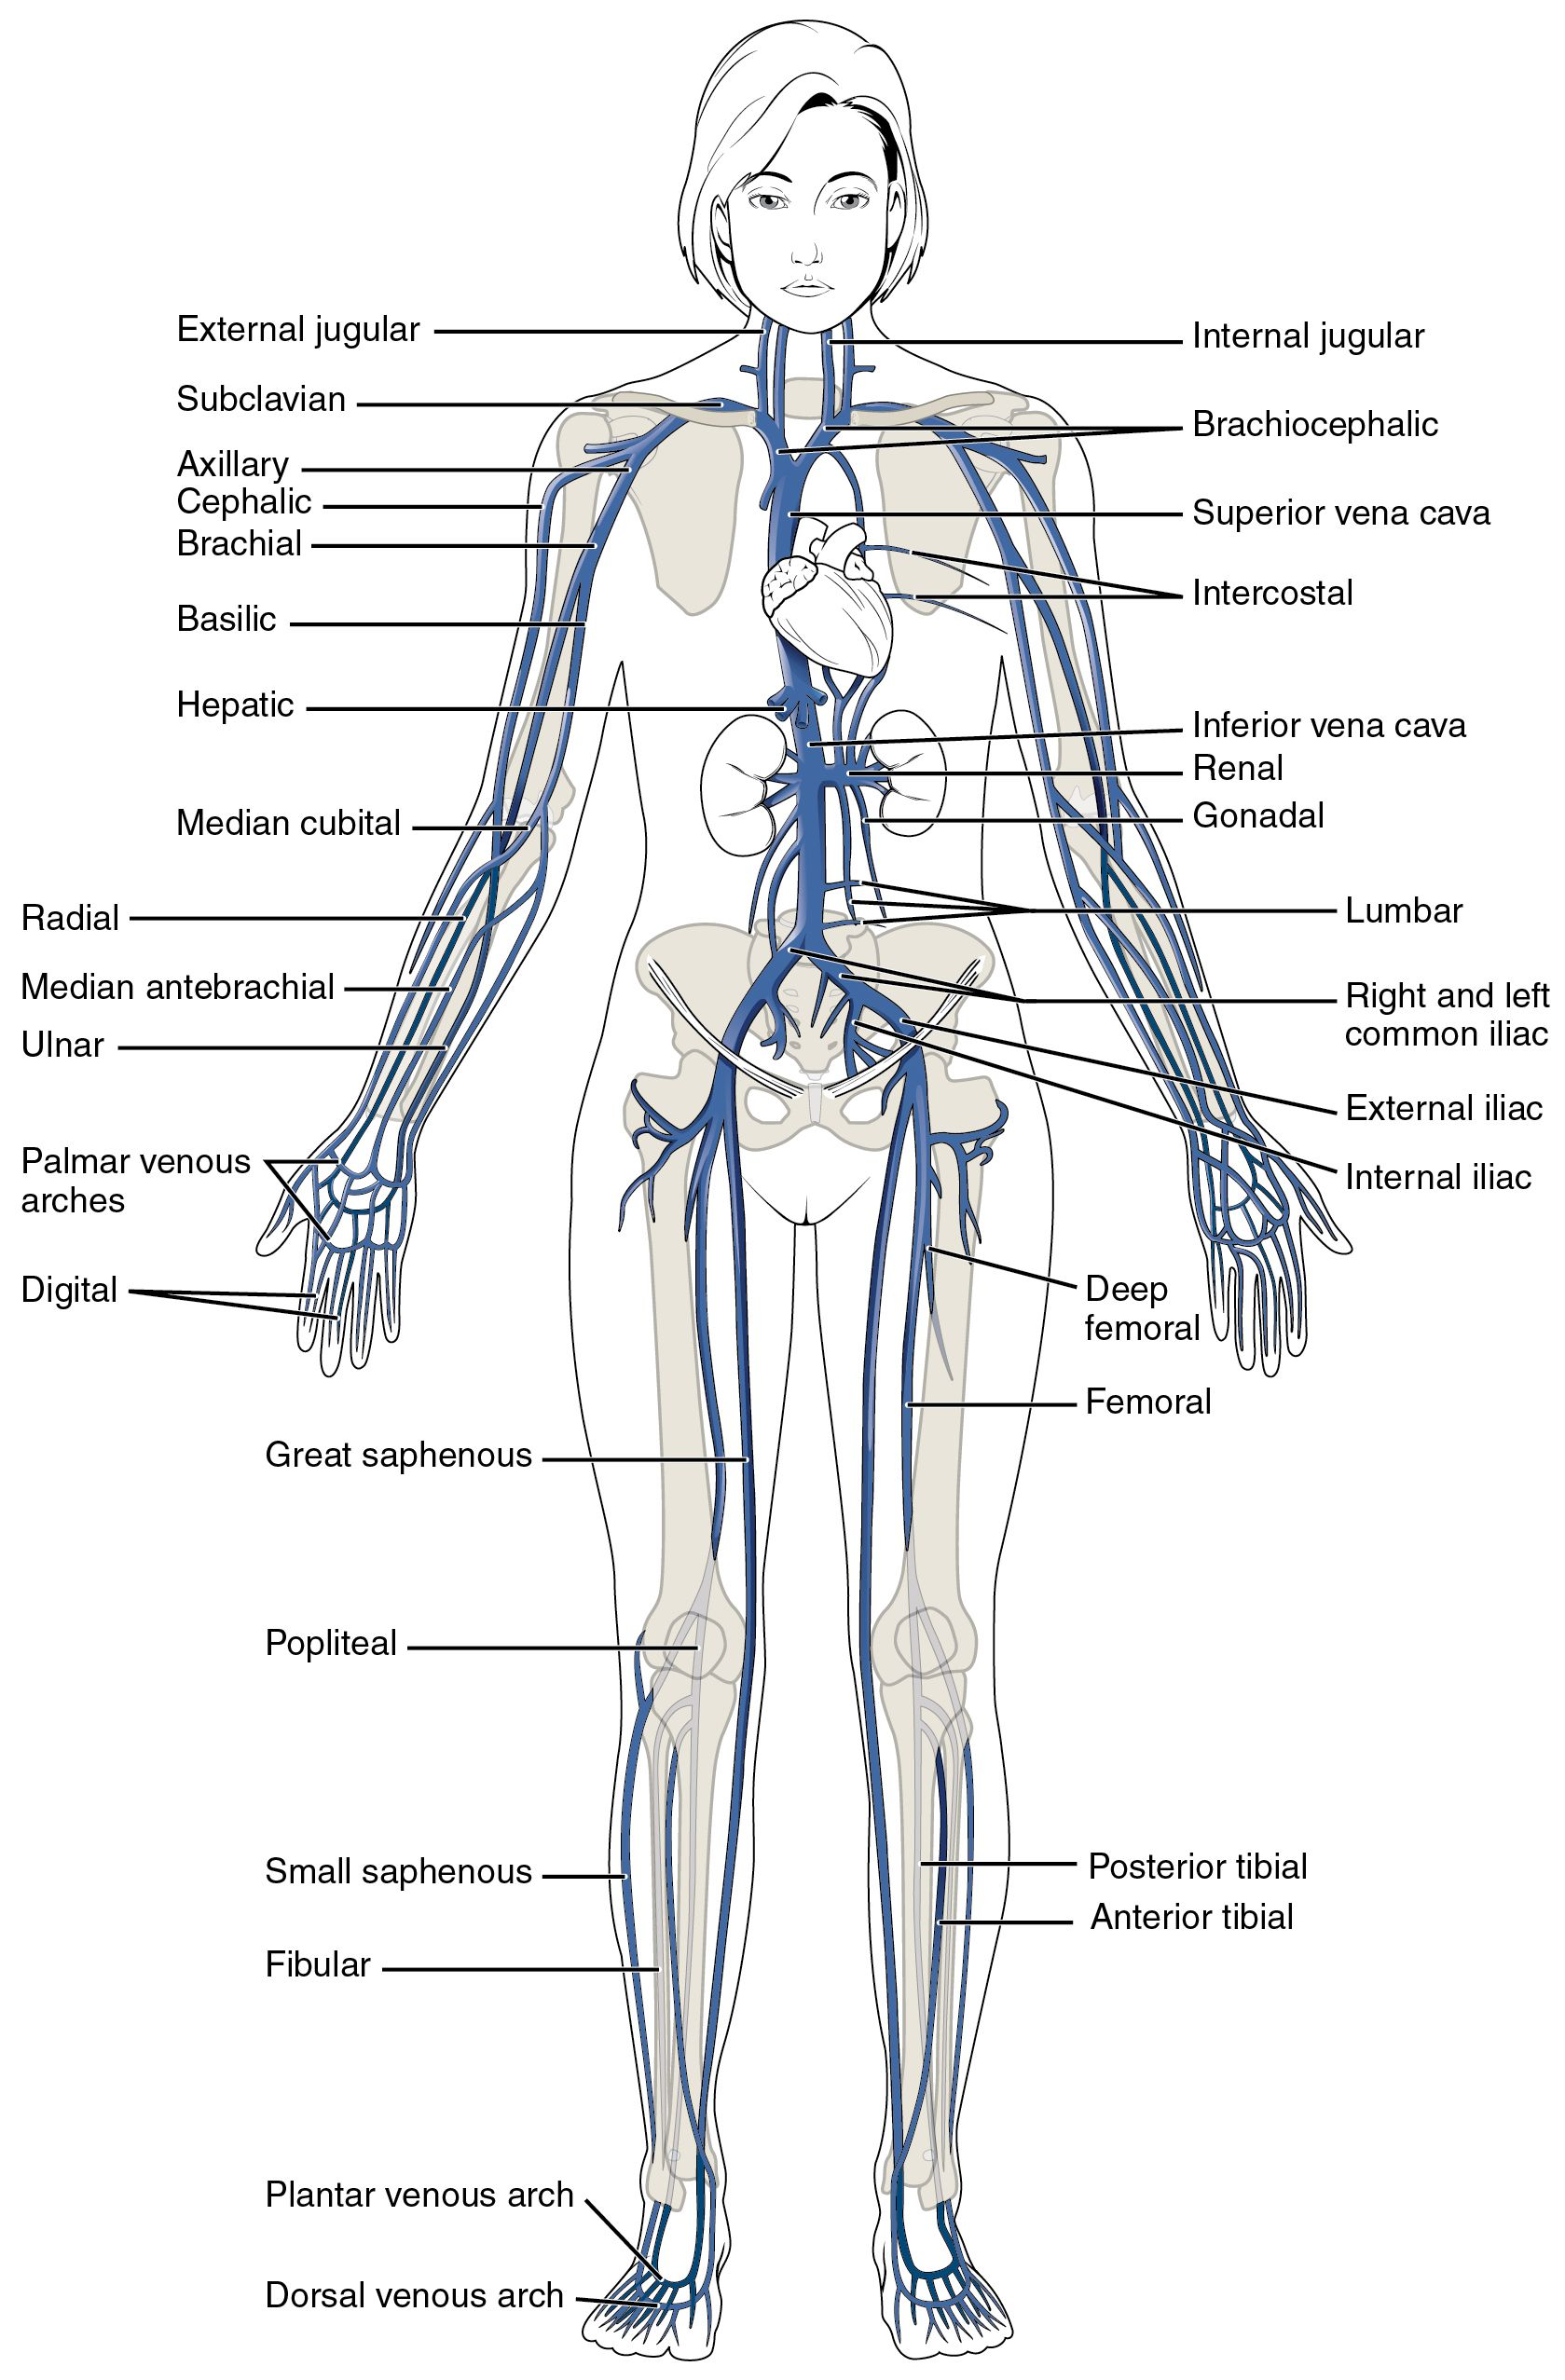 502 Bad Gateway Human Anatomy Picture Body Diagram Human Body Anatomy